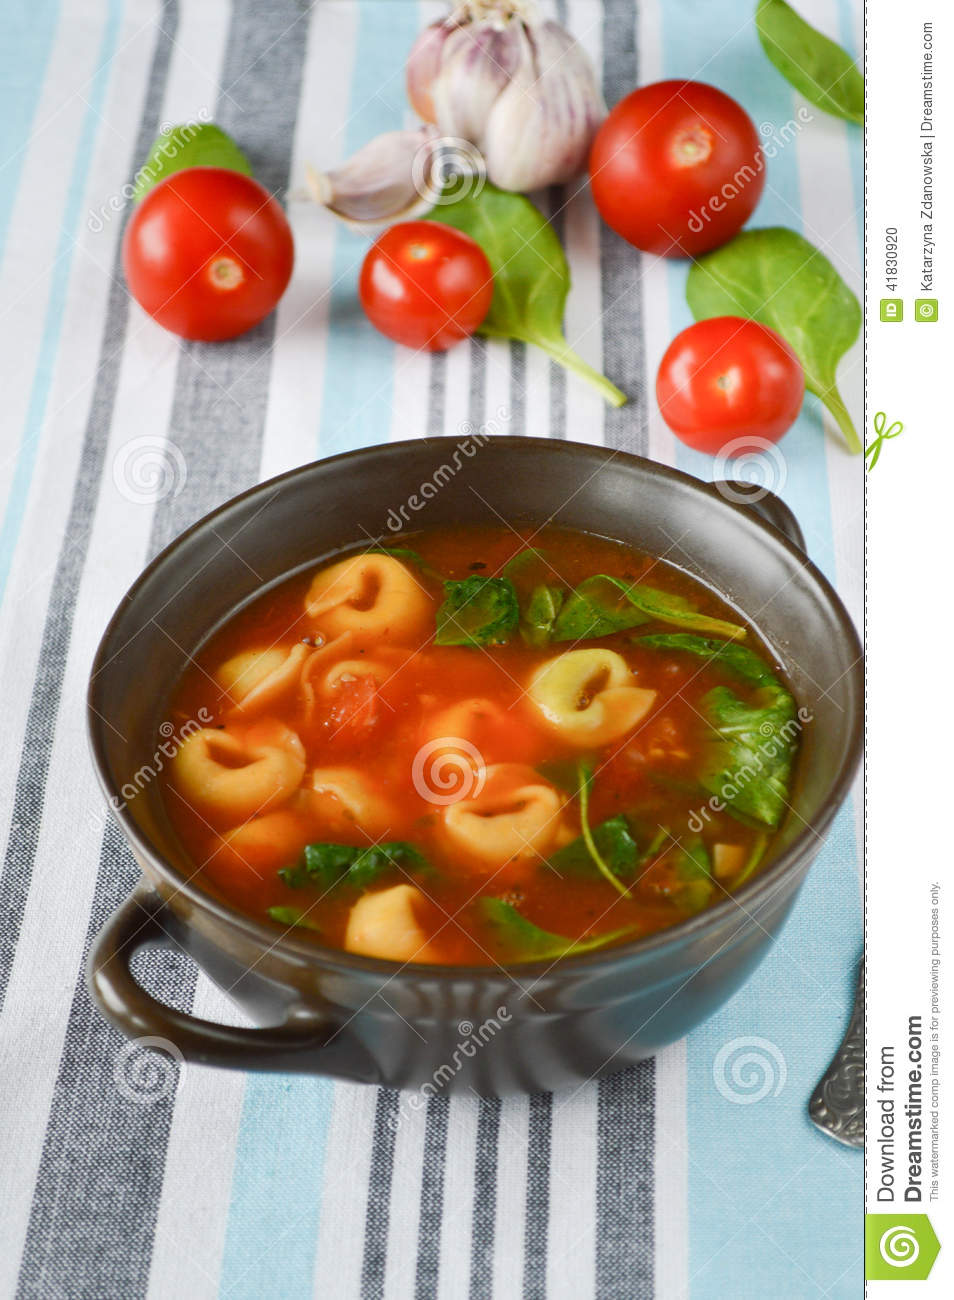 Homemade Tortellini Soup With Tomato, Basil, And Spinach Stock Photo ...